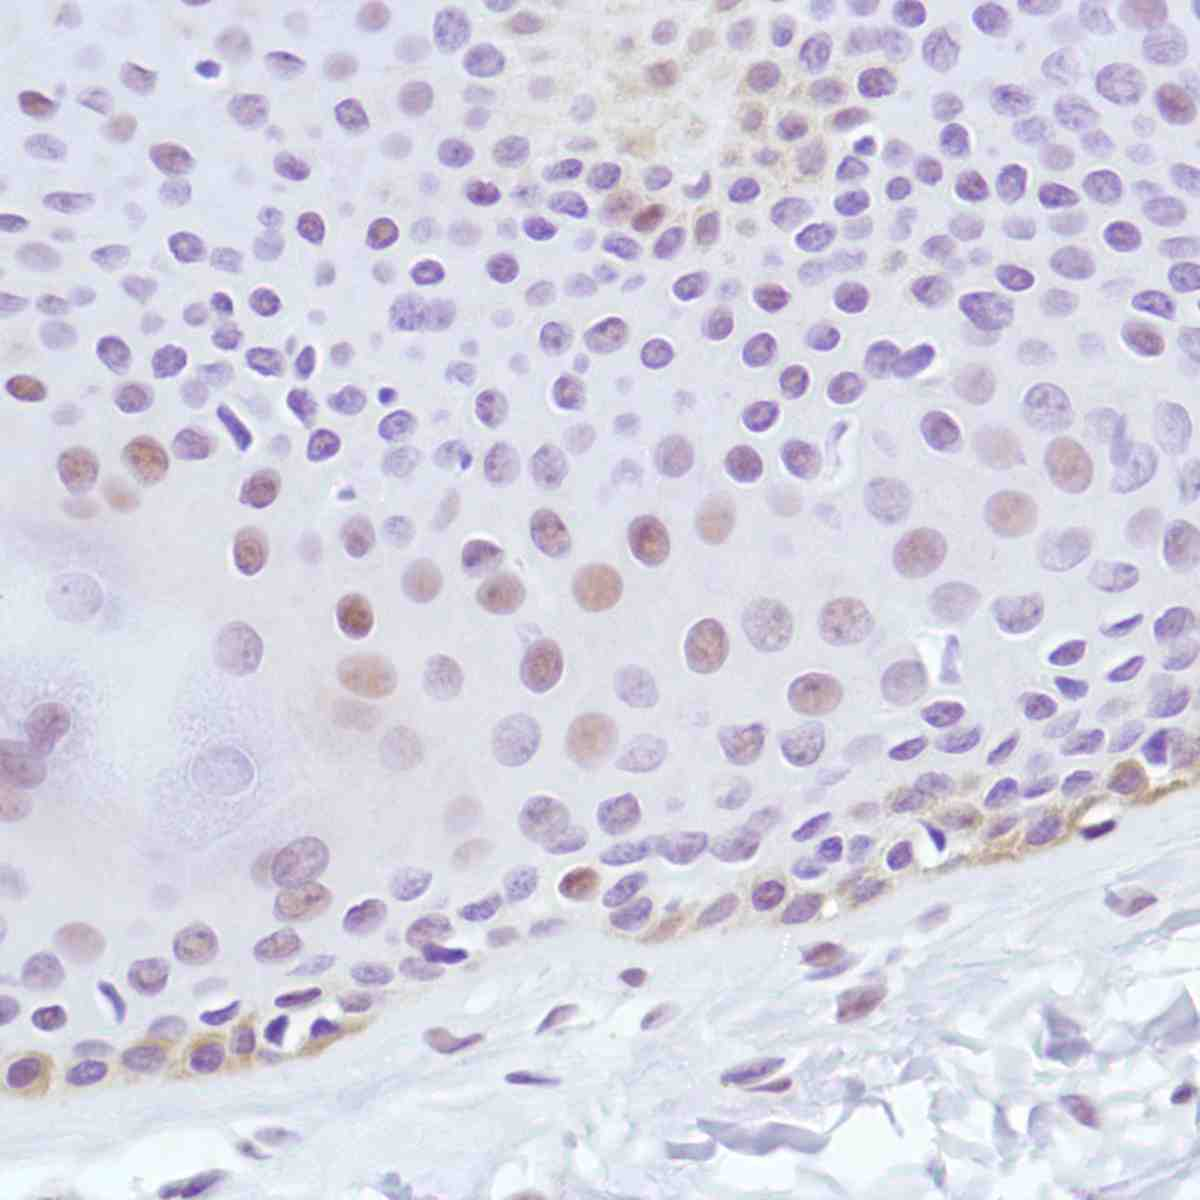 Human Skin stained with anti-Cyclin D3 antibody